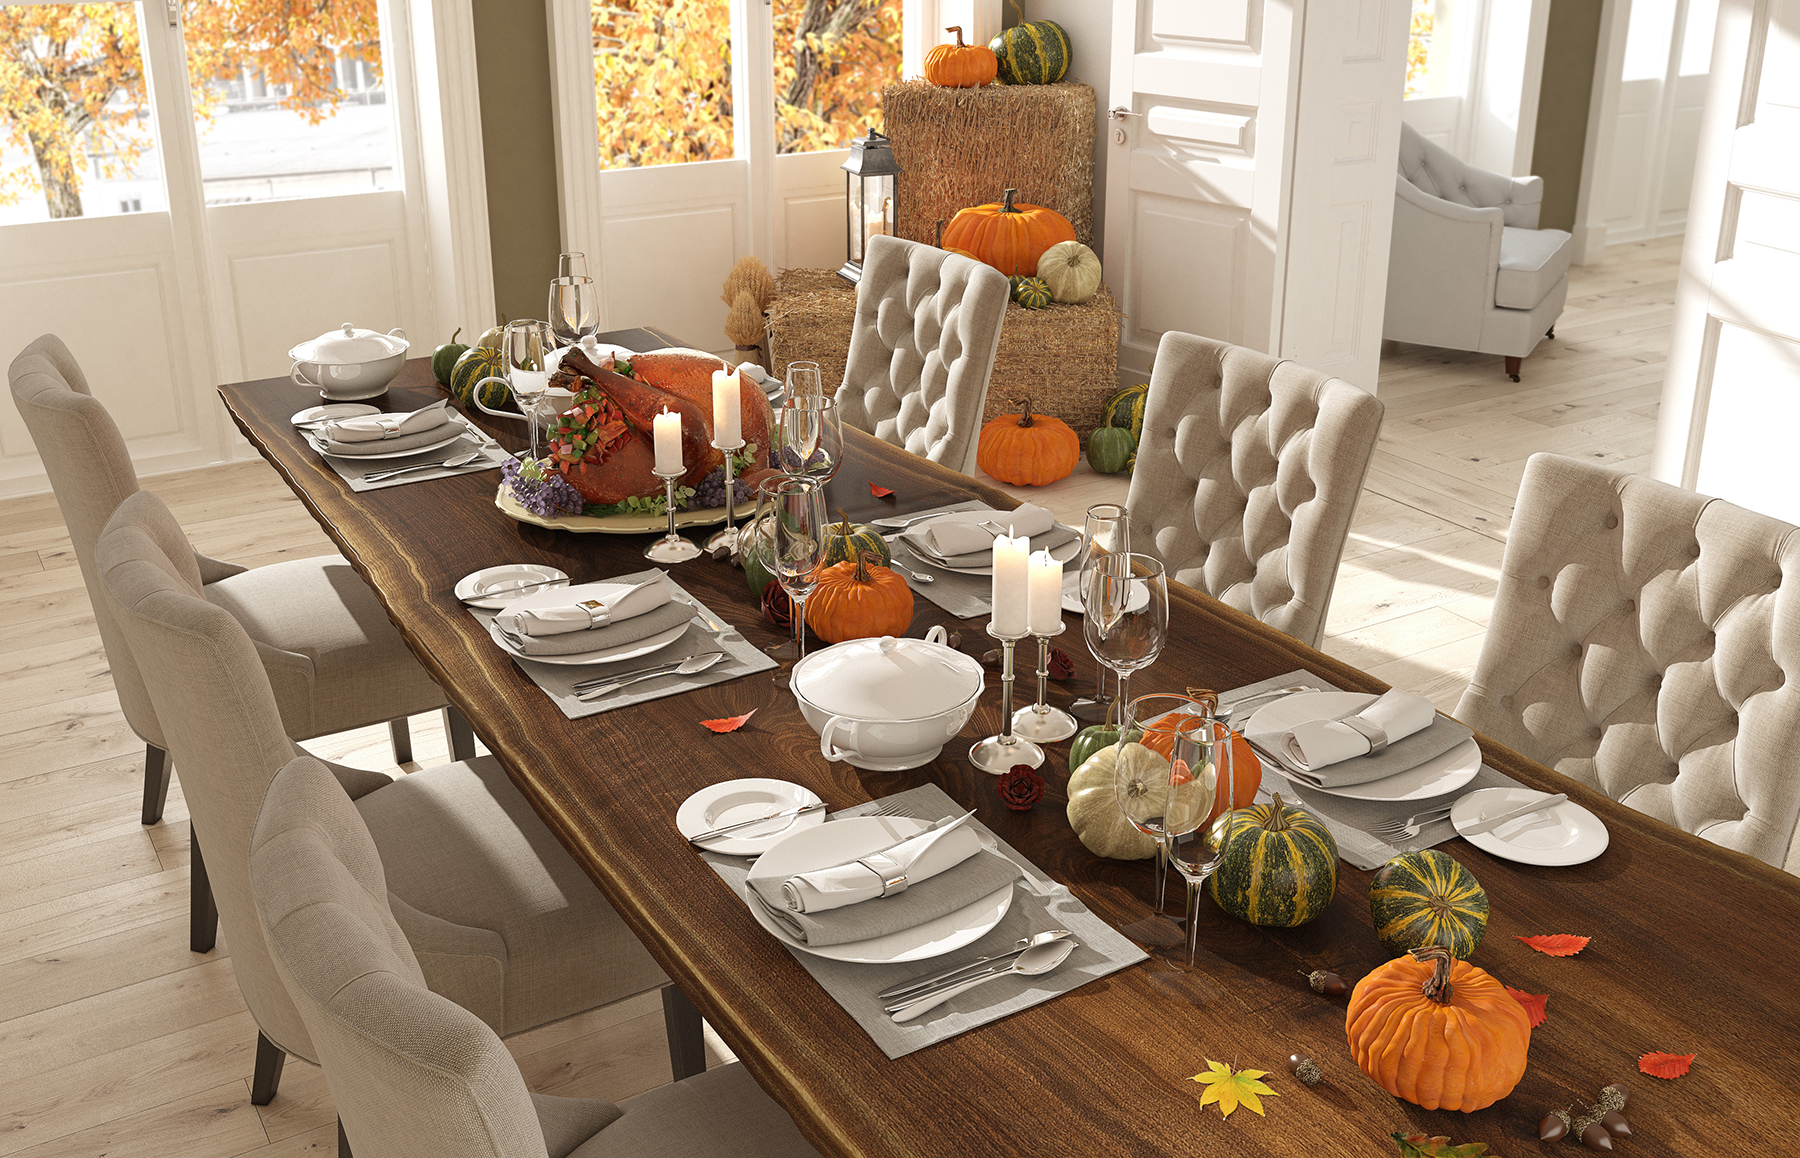 10 Thanksgiving Decorations For Your Home | On Point Carolinas Realty